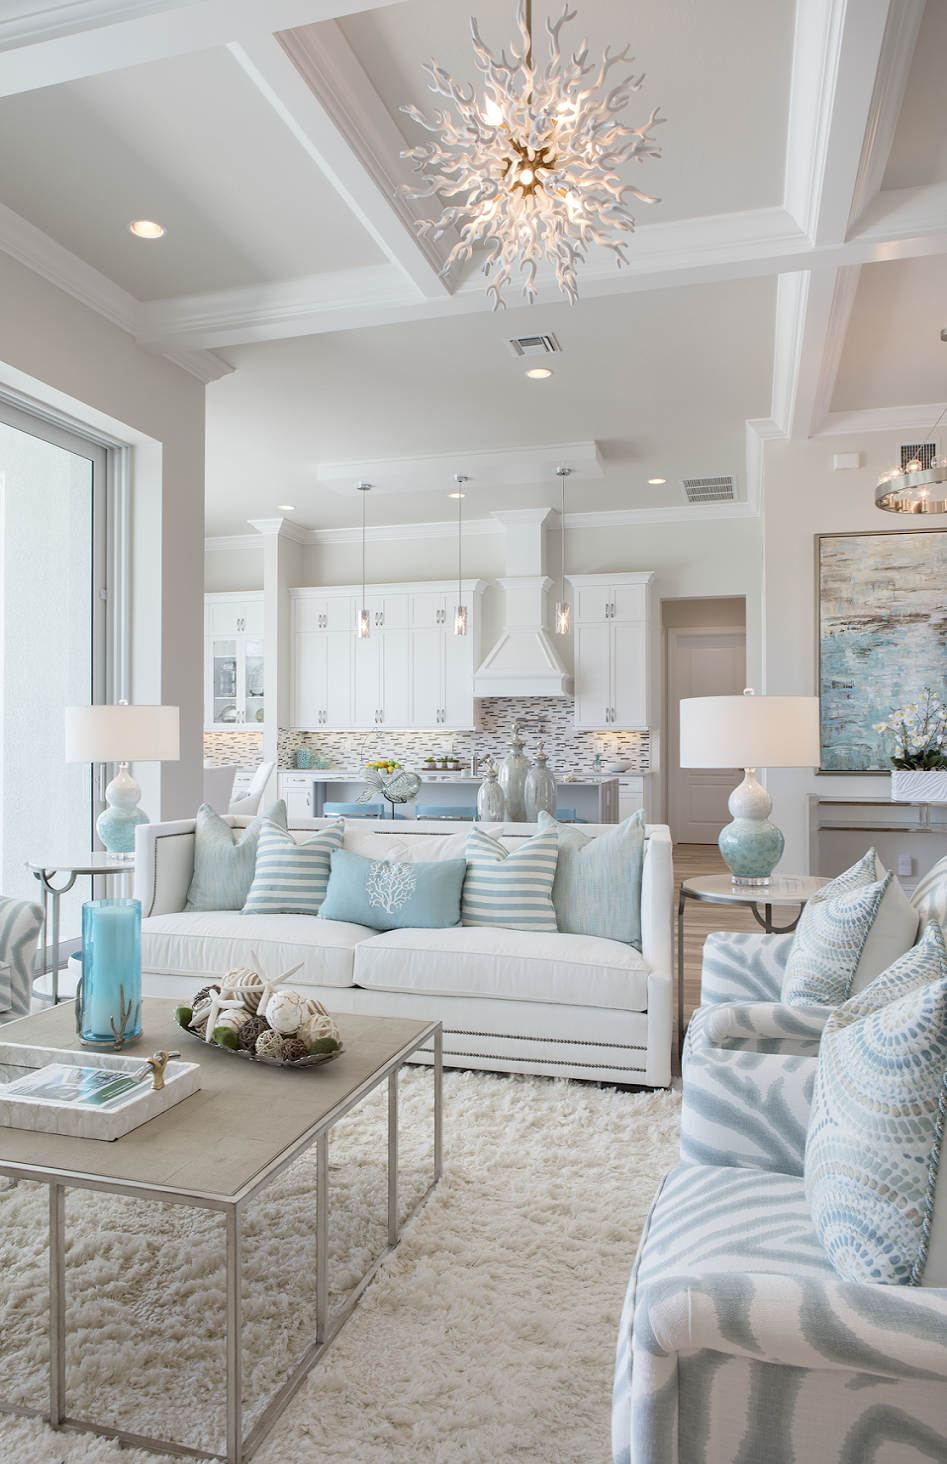 Beach House Decor Style Coastal Interiors Florida | Interior ...